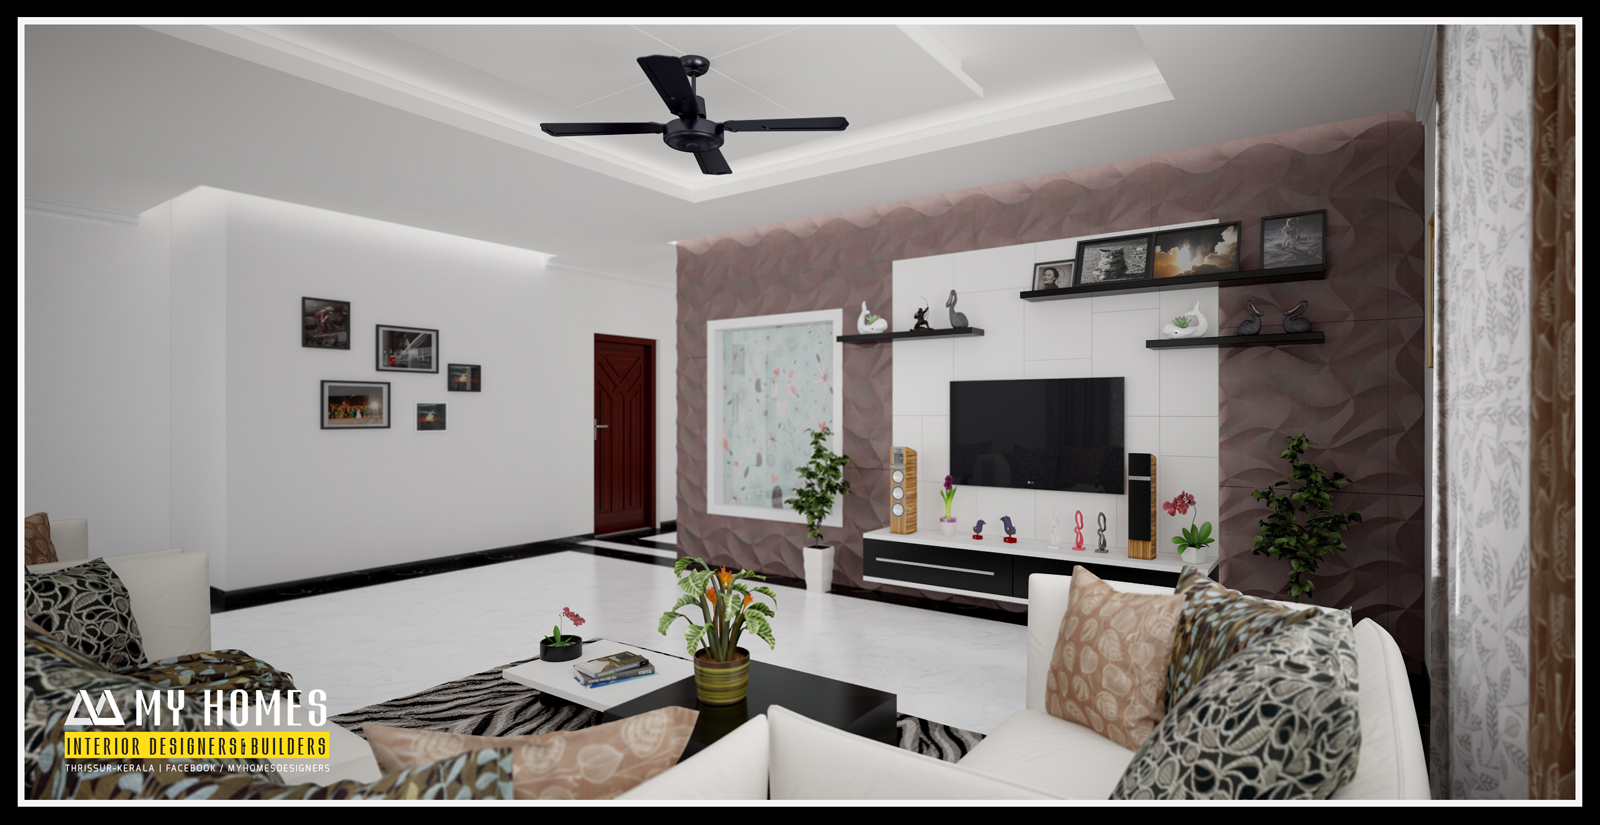 Cosmopolitan Home Interior Furniture Kerala Living Room Interior Designsfor Homes Home Furniture Home Interior Furniture Kerala Living Room Interior interior Interior Design Living Room Photos